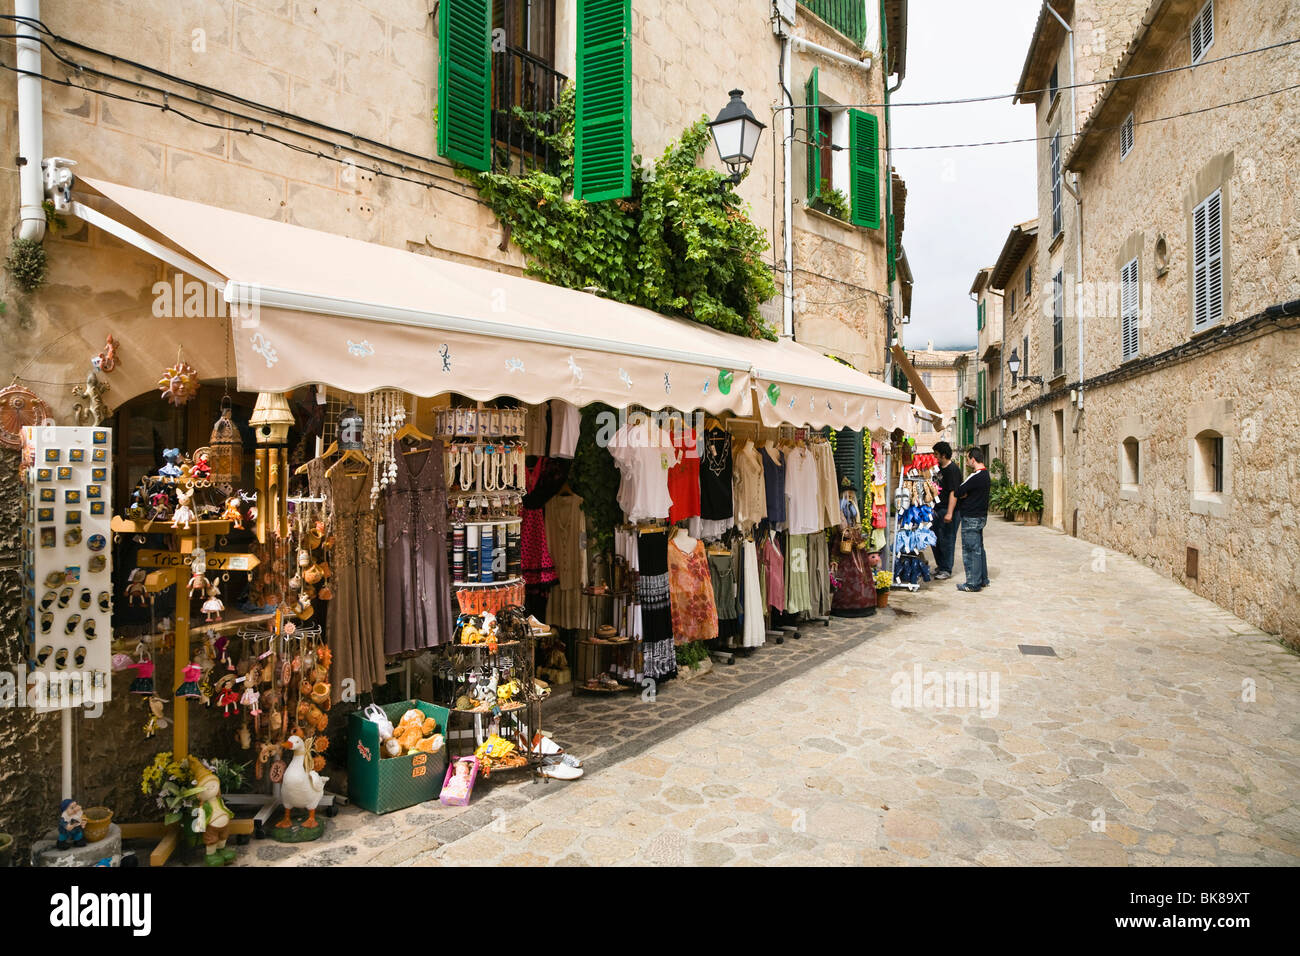 Shop in Valldemossa, Tramuntana Mountains, Mediterranean Sea, Mallorca, Majorca, Balearic Islands, Spain, Europe Stock Photo